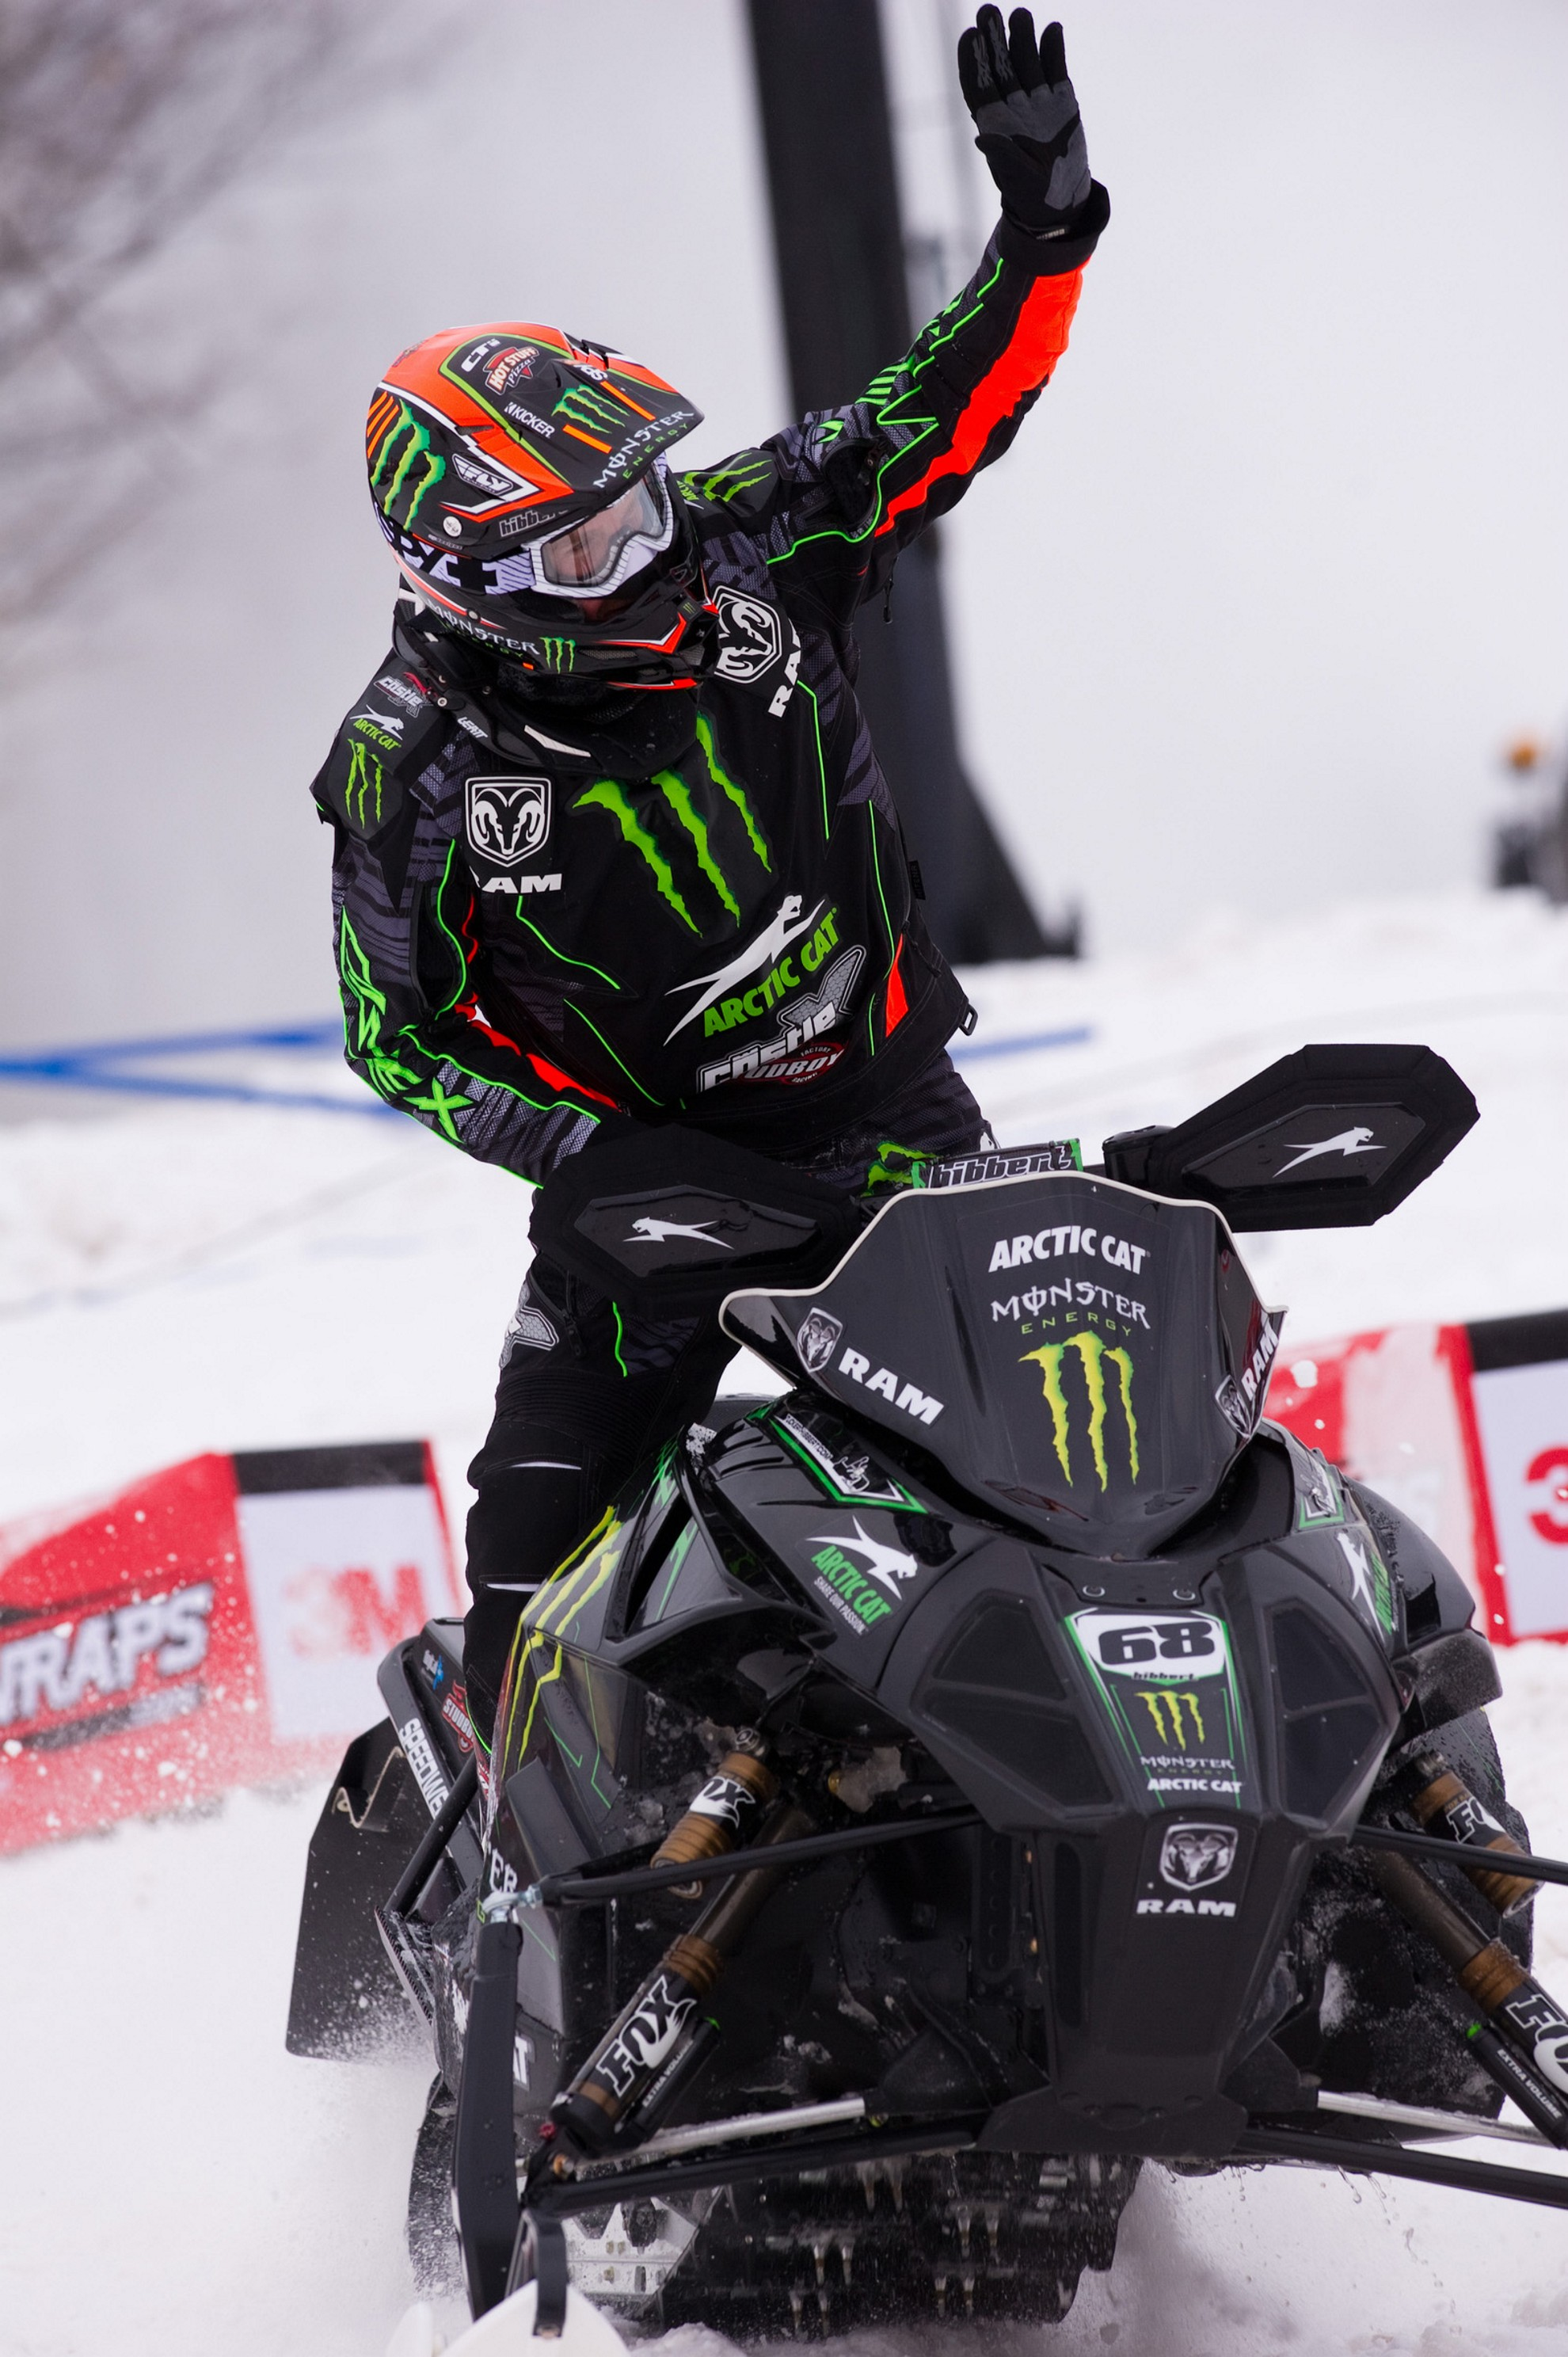 World Champion Snocross